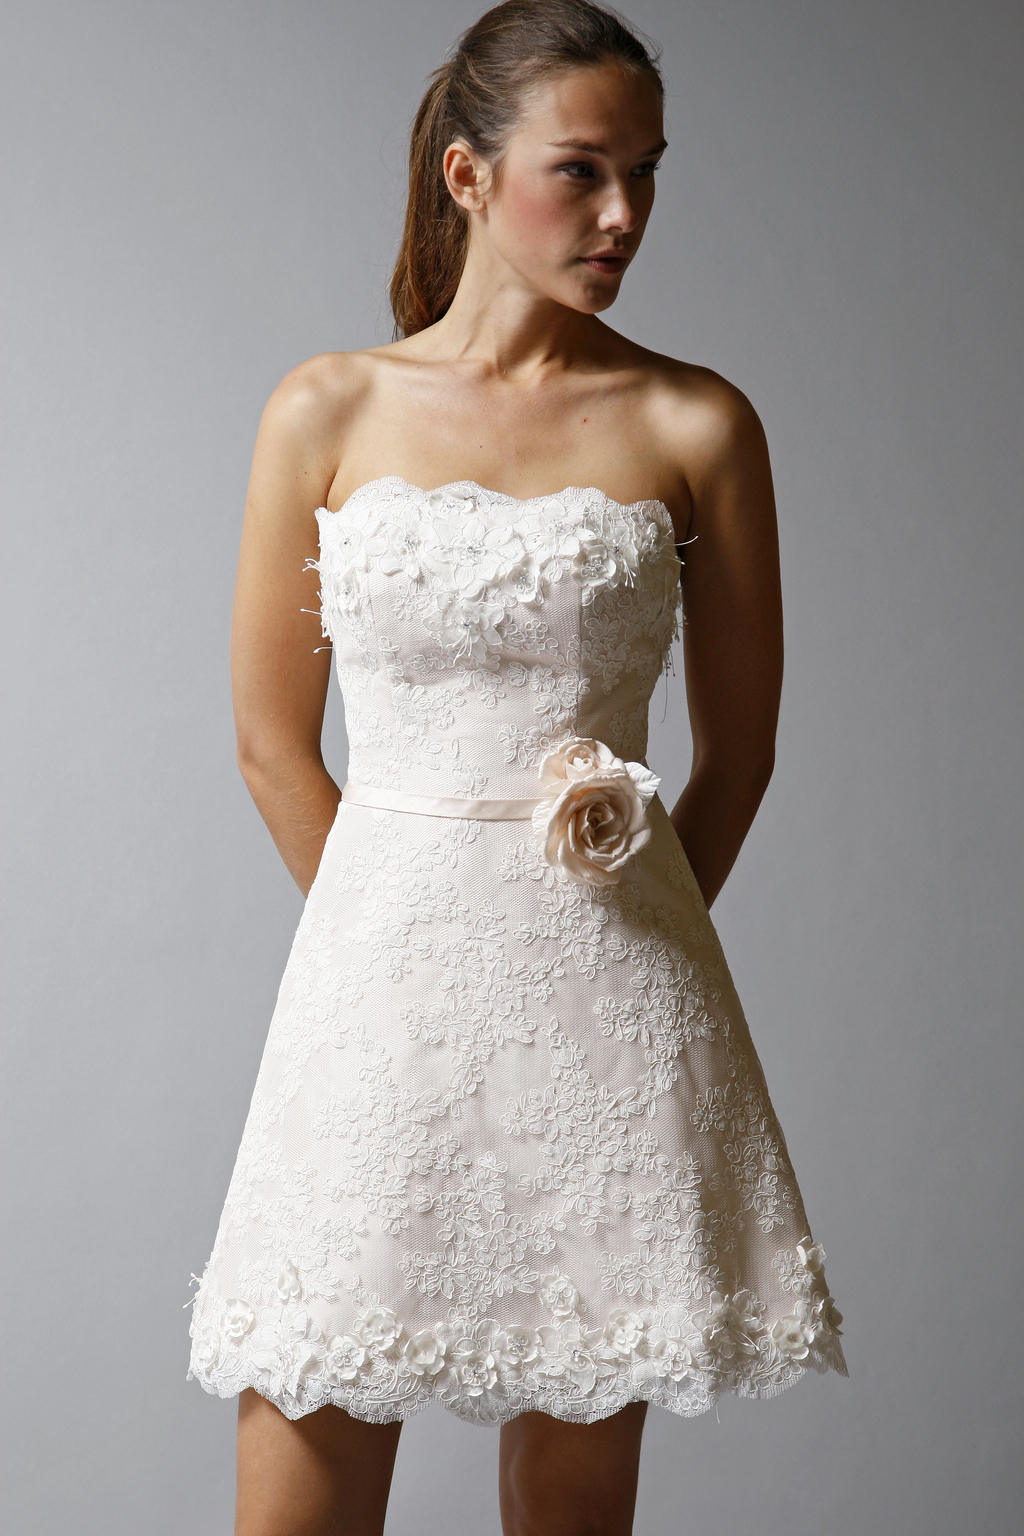 Lwds-of-2013-st-pucchi-bridal-7.full